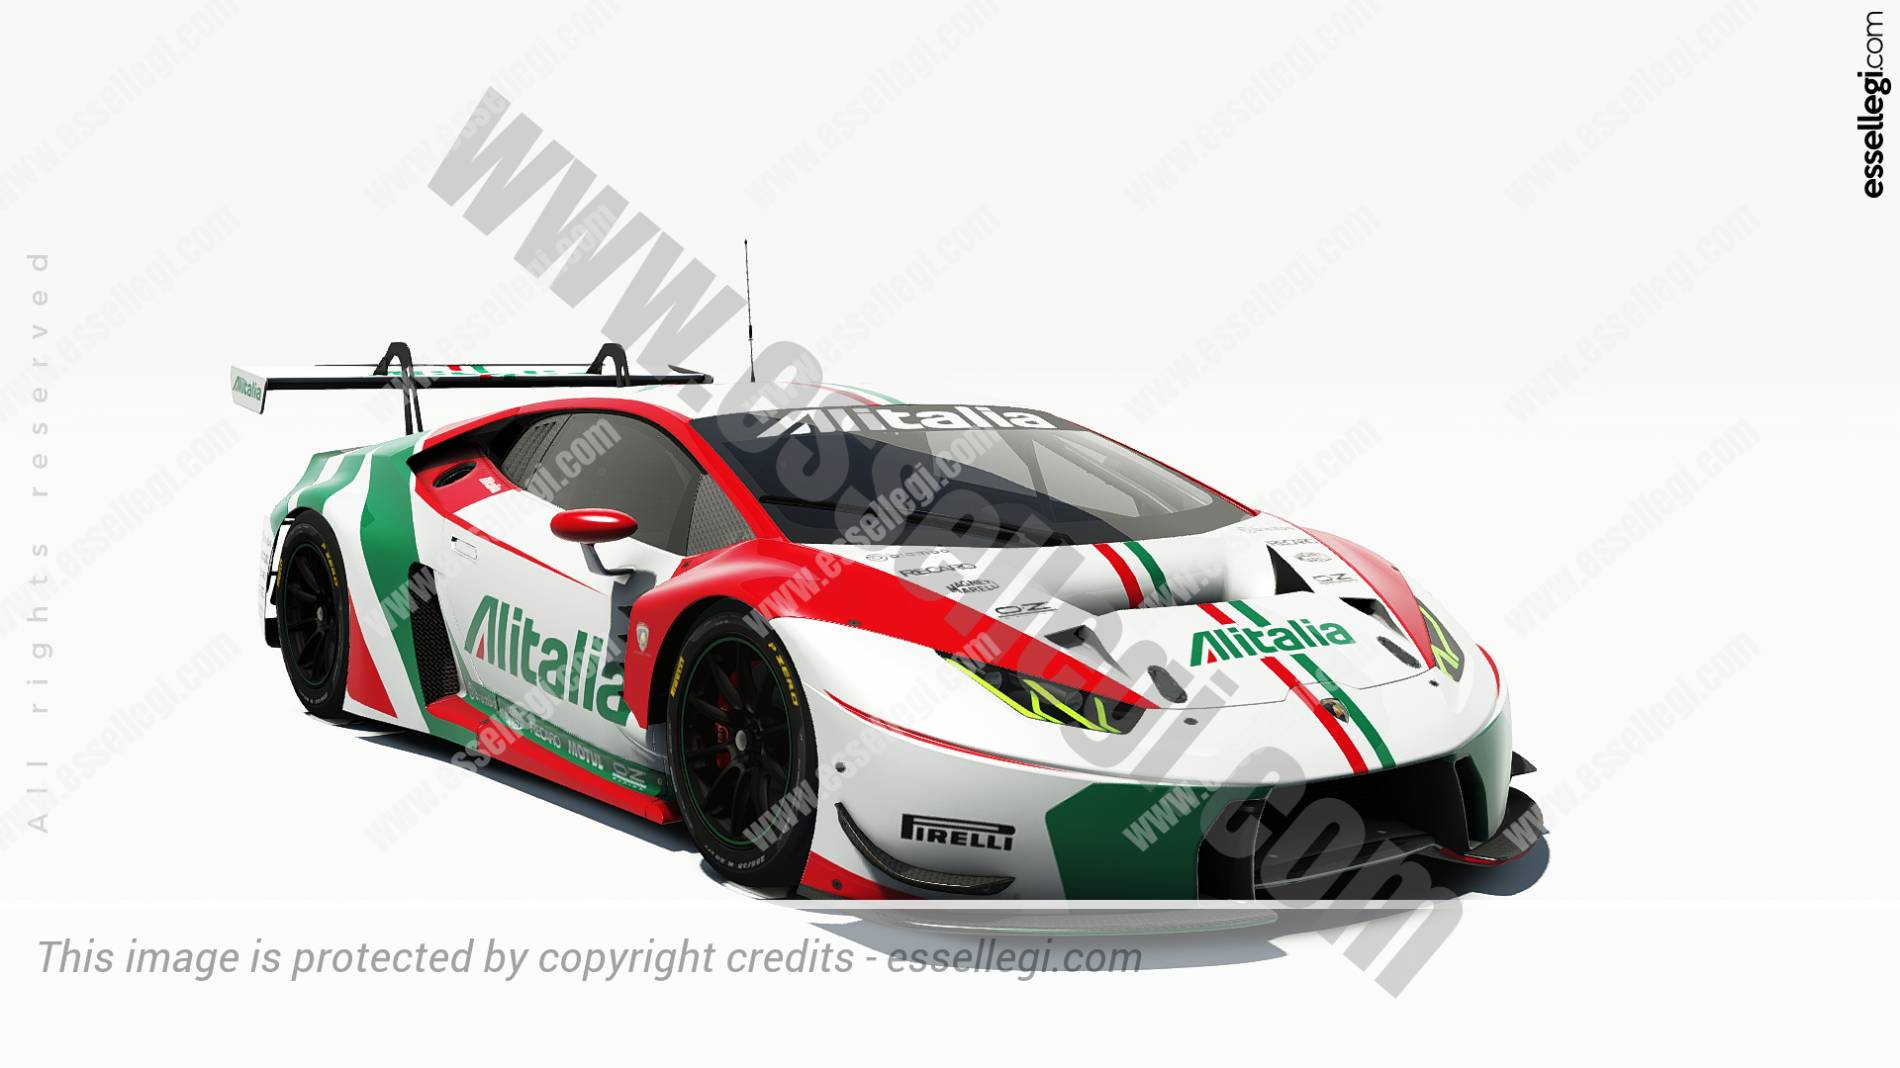 lambo huracan gt3 alitalia tribute racing car livery by. Black Bedroom Furniture Sets. Home Design Ideas